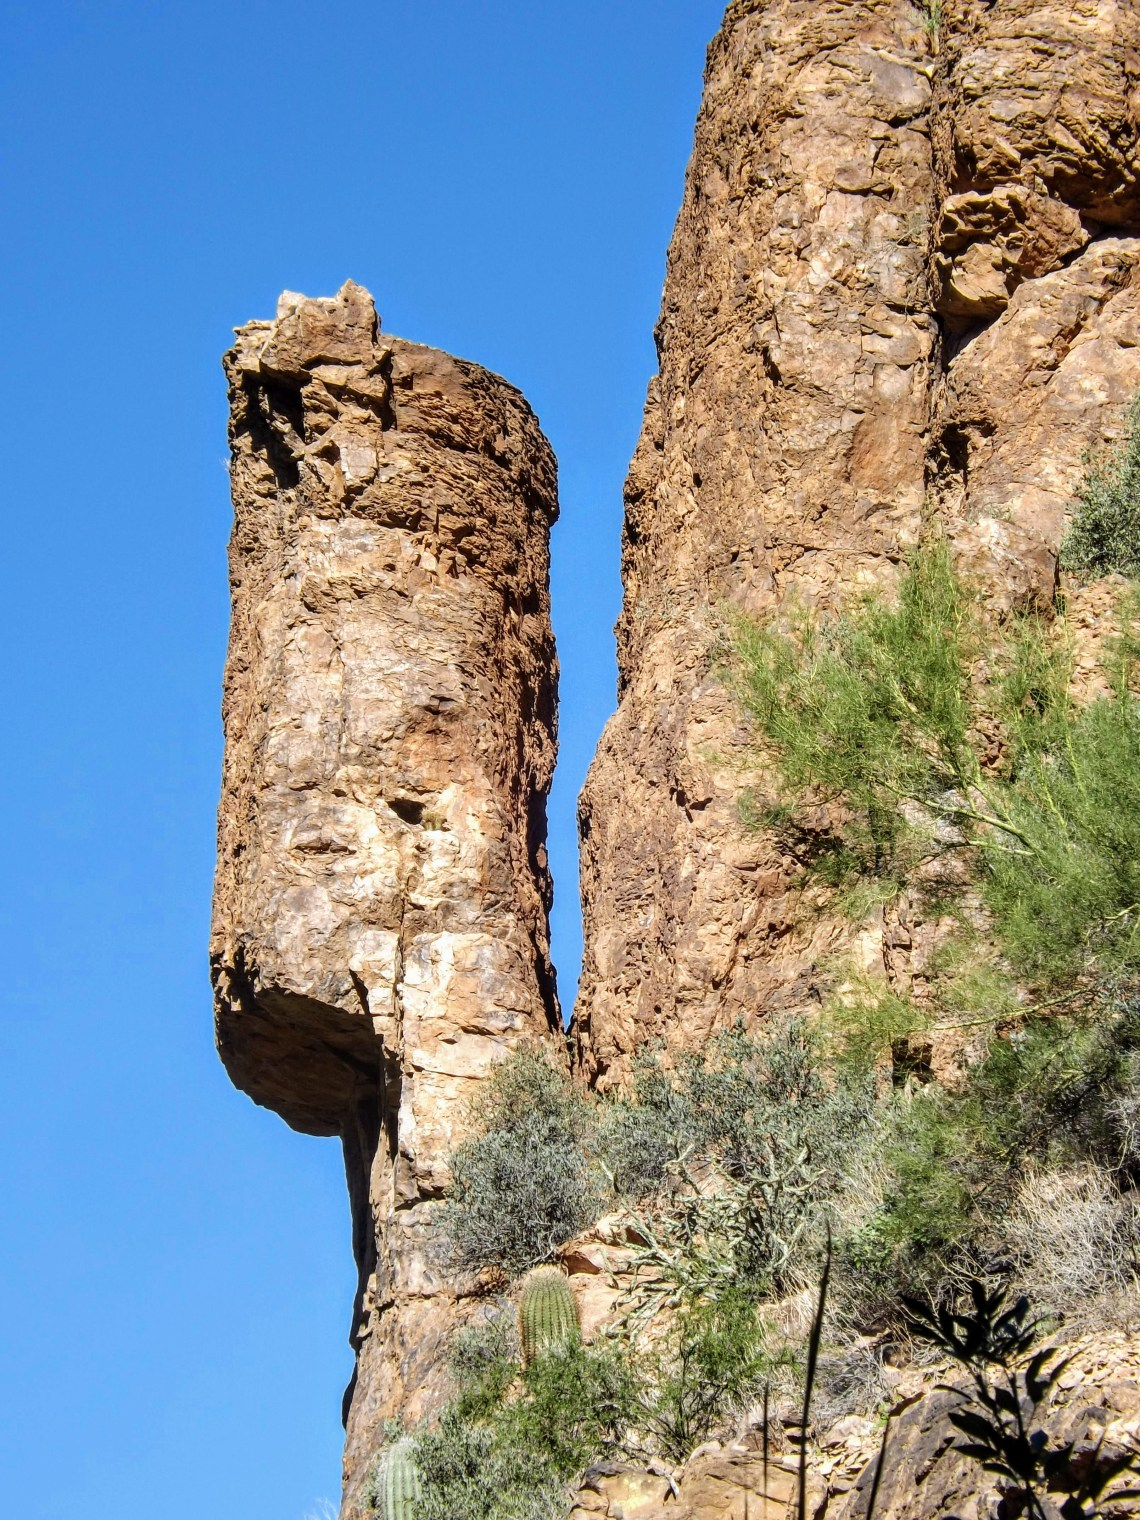 Large totem-like rock separated from rock cliff